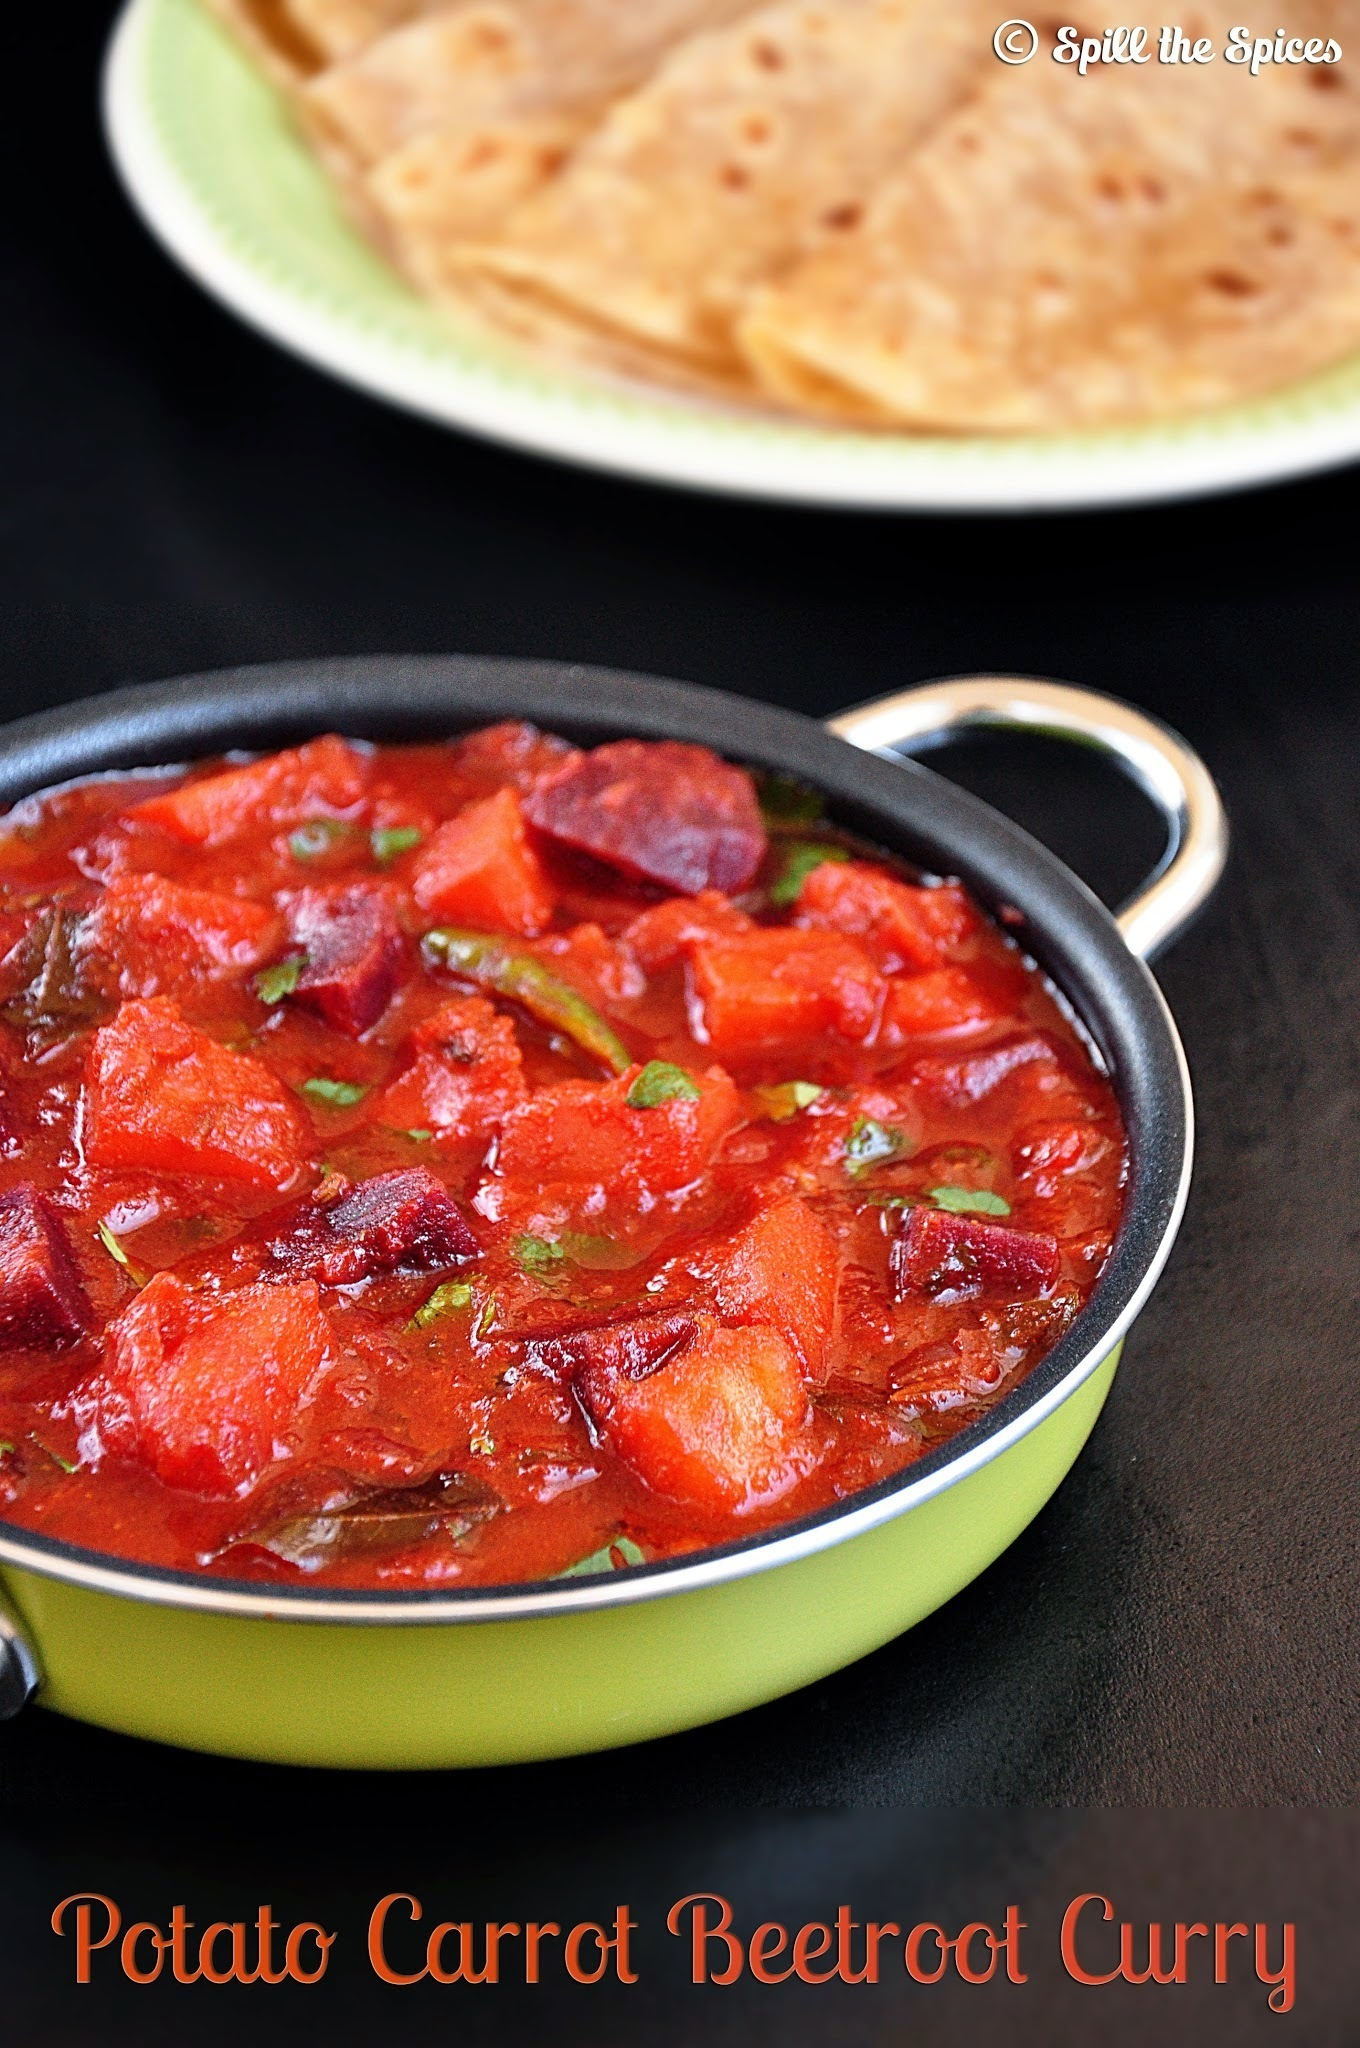 Potato Carrot Beetroot Curry